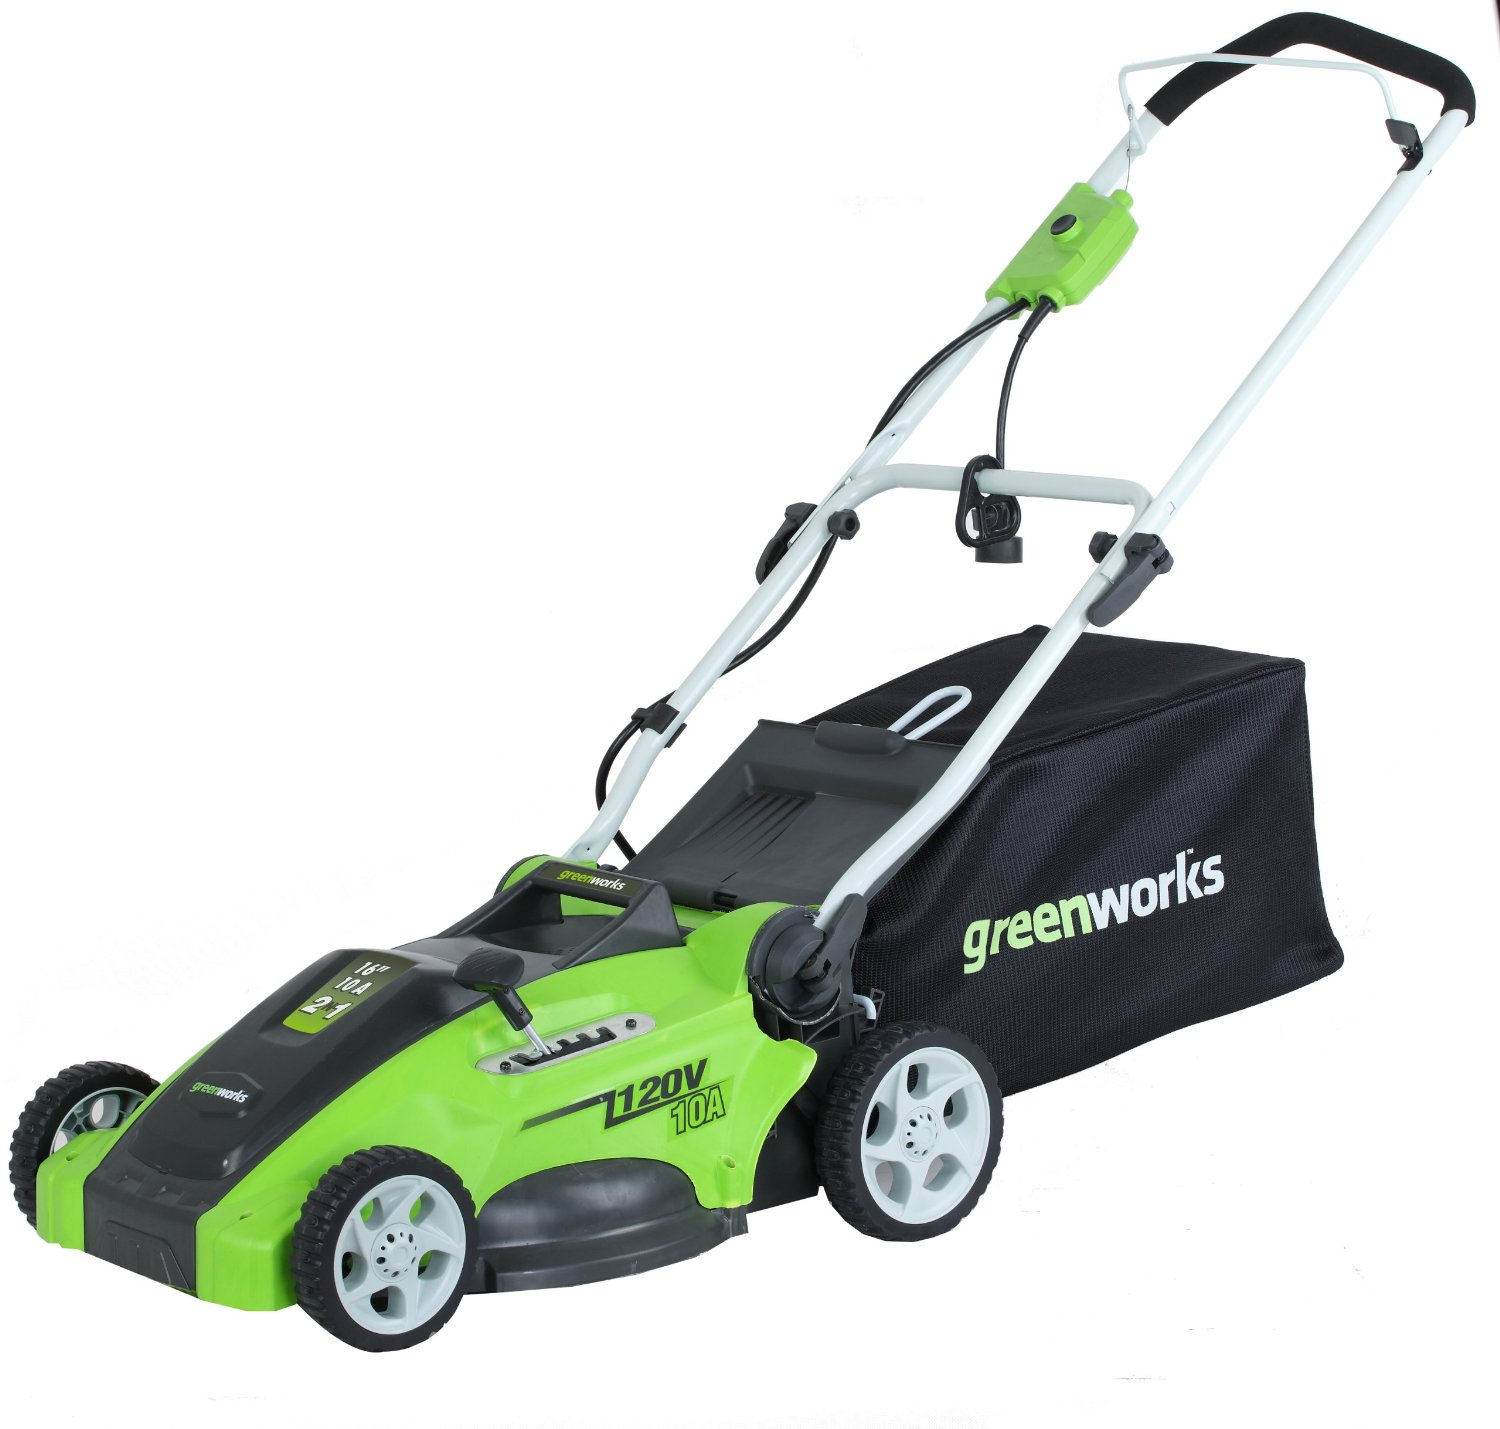 GreenWorks 25142 10 Amp Corded 16 Inch Lawn Mower